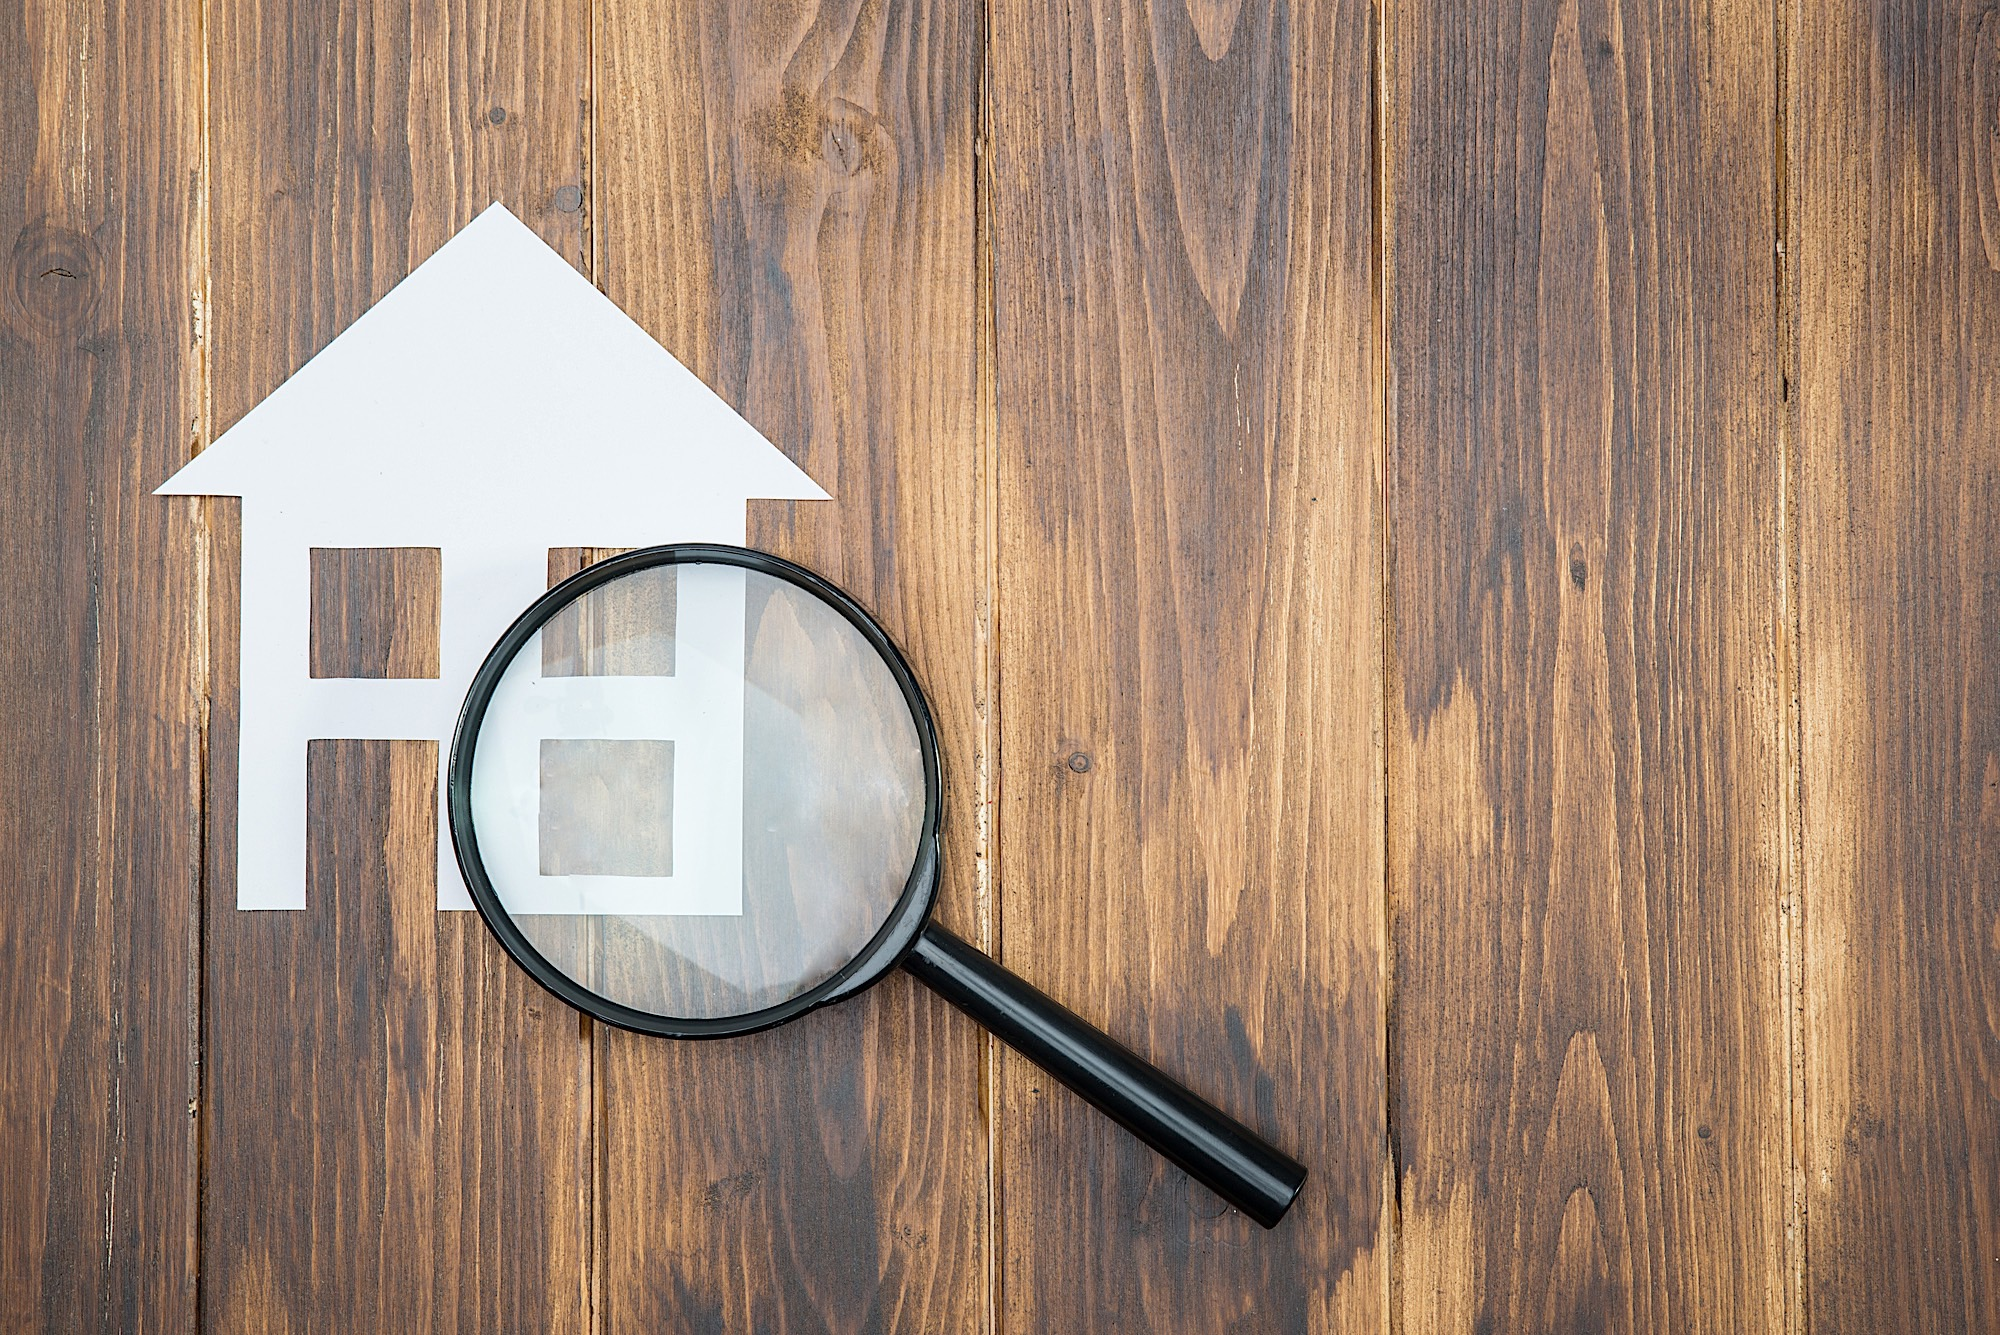 4 Things You Need to Know to Pass Your Home Inspection